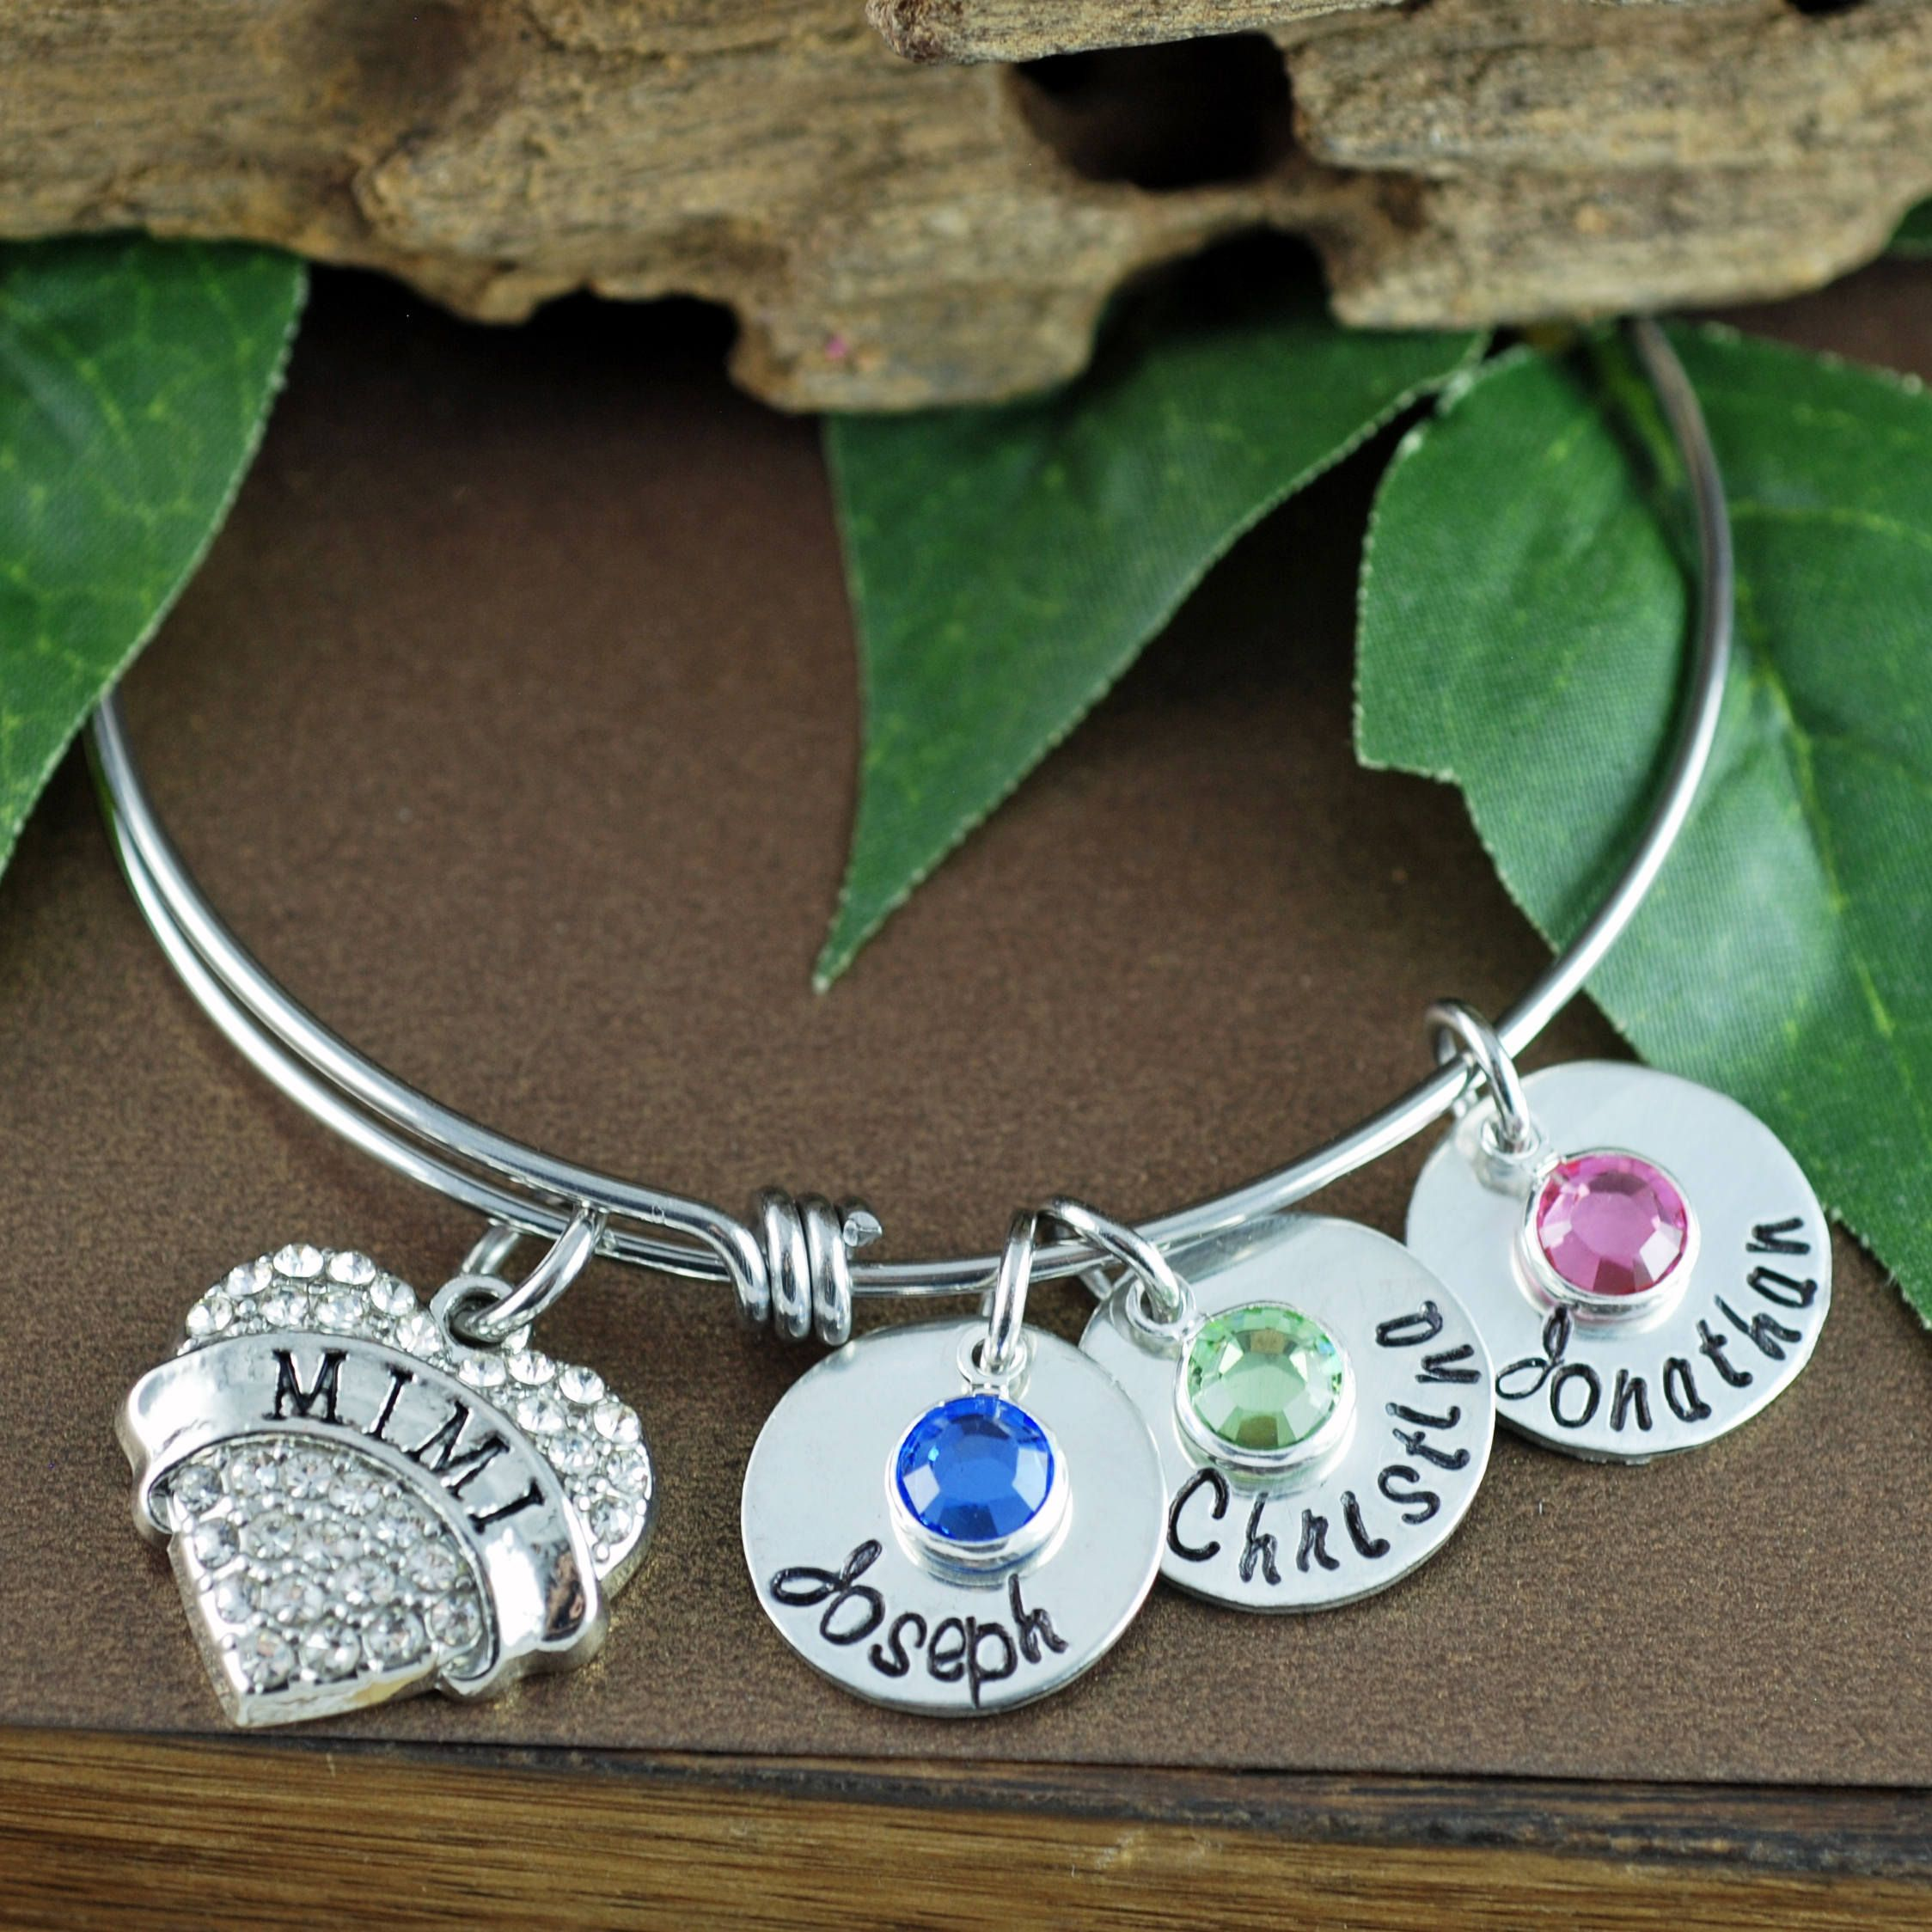 mother gift il for fullxfull bangle p handstamped jewelry her bracelet personalized daypersonalized giftmothers handmademothers handmade